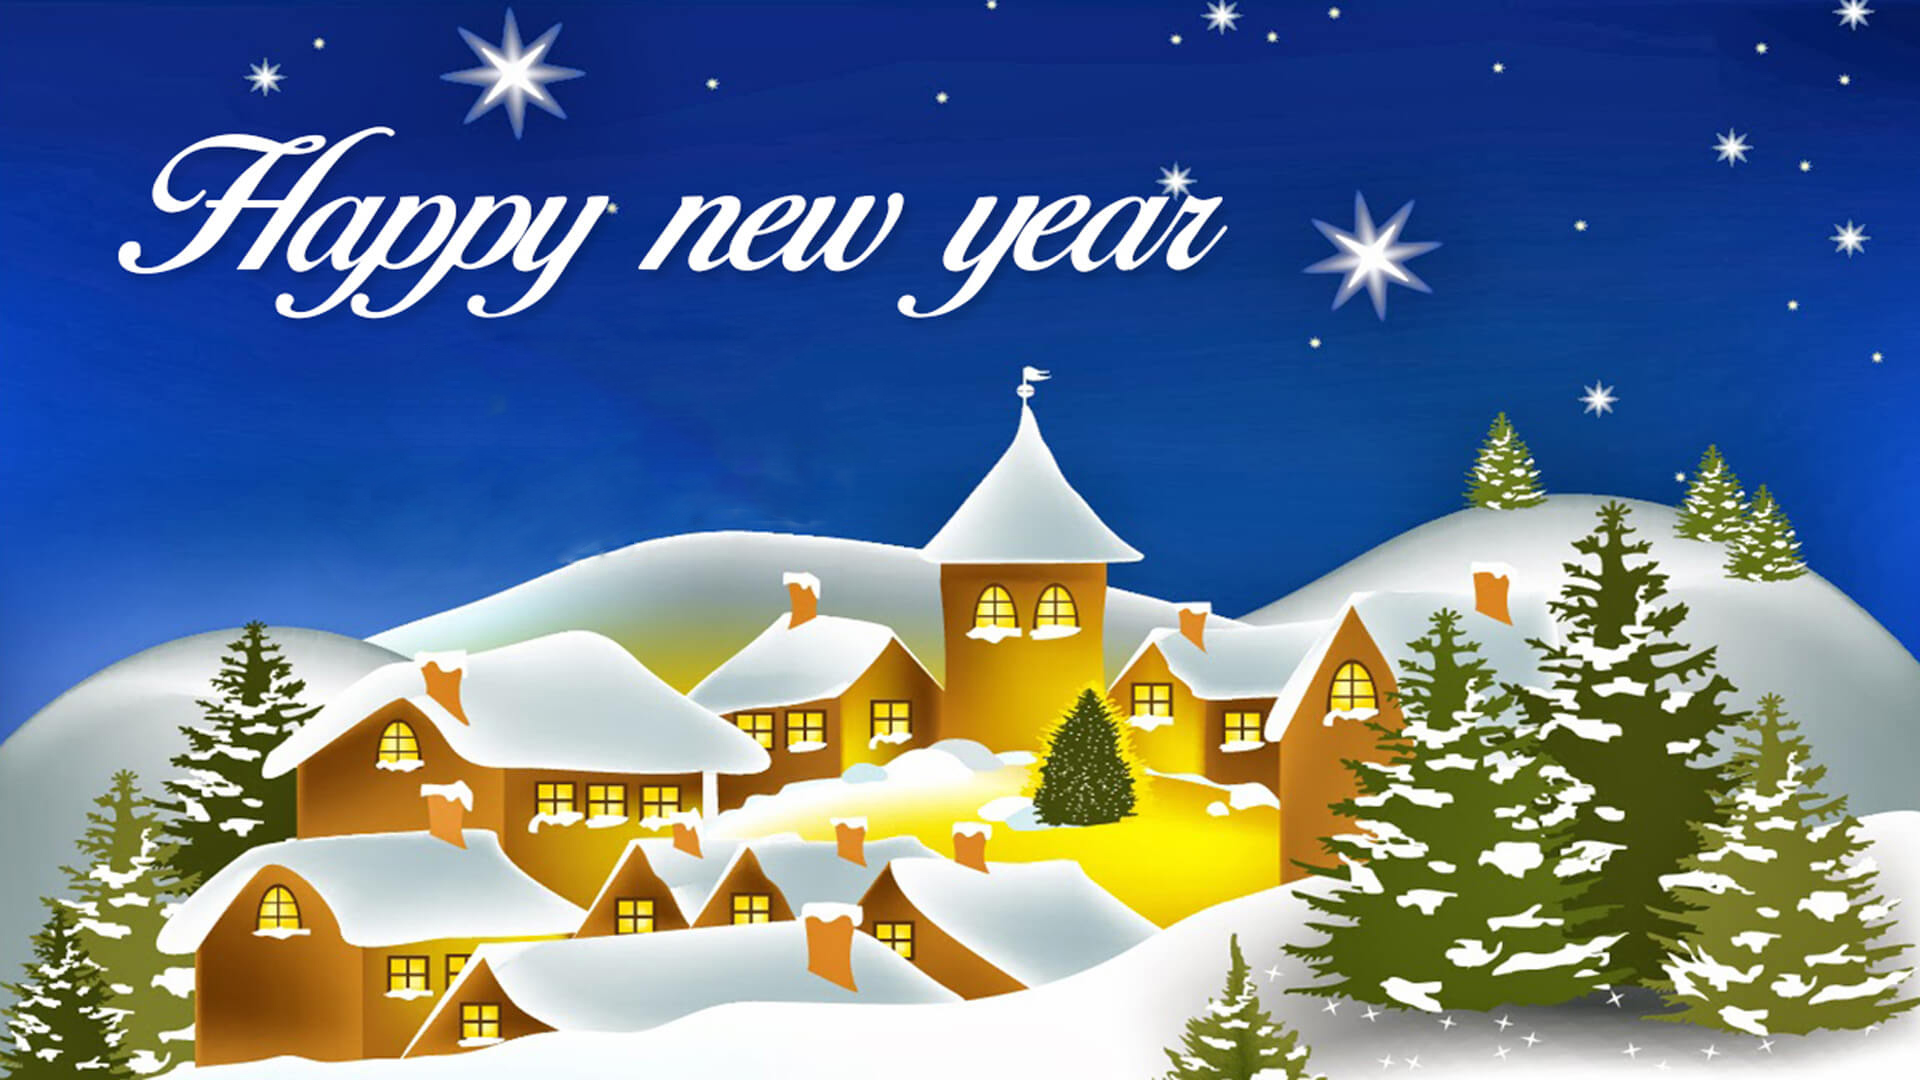 happy new year wishes famous quotes snow hut tree light